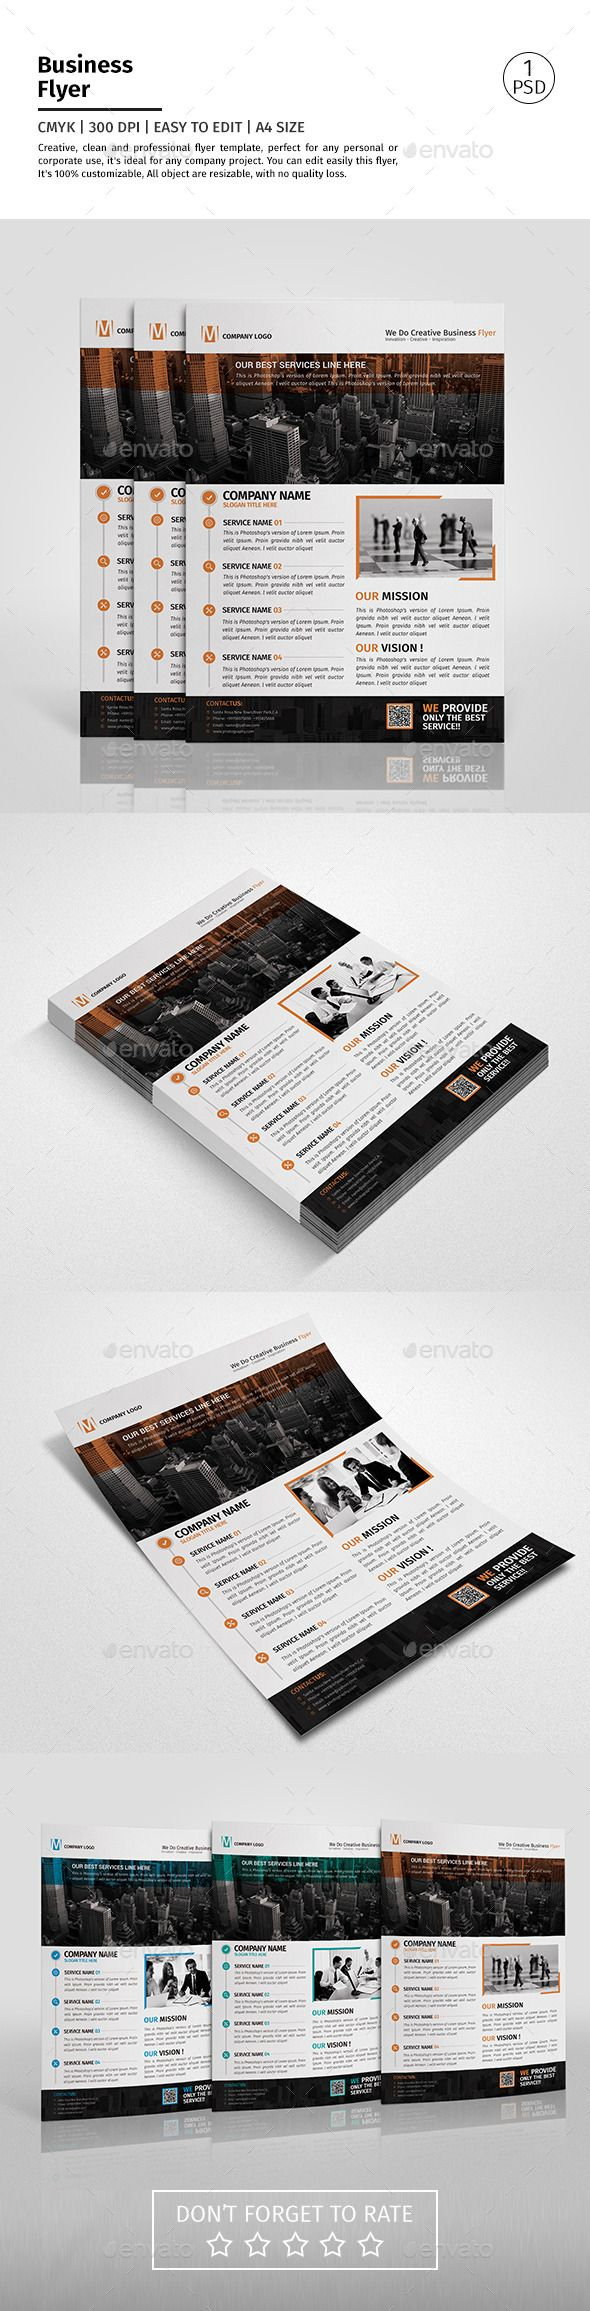 A4 Corporate Business Flyer Template PSD #design Download: http://graphicriver.net/item/a4-corporate-business-flyer-template-vol-08/12795044?ref=ksioks